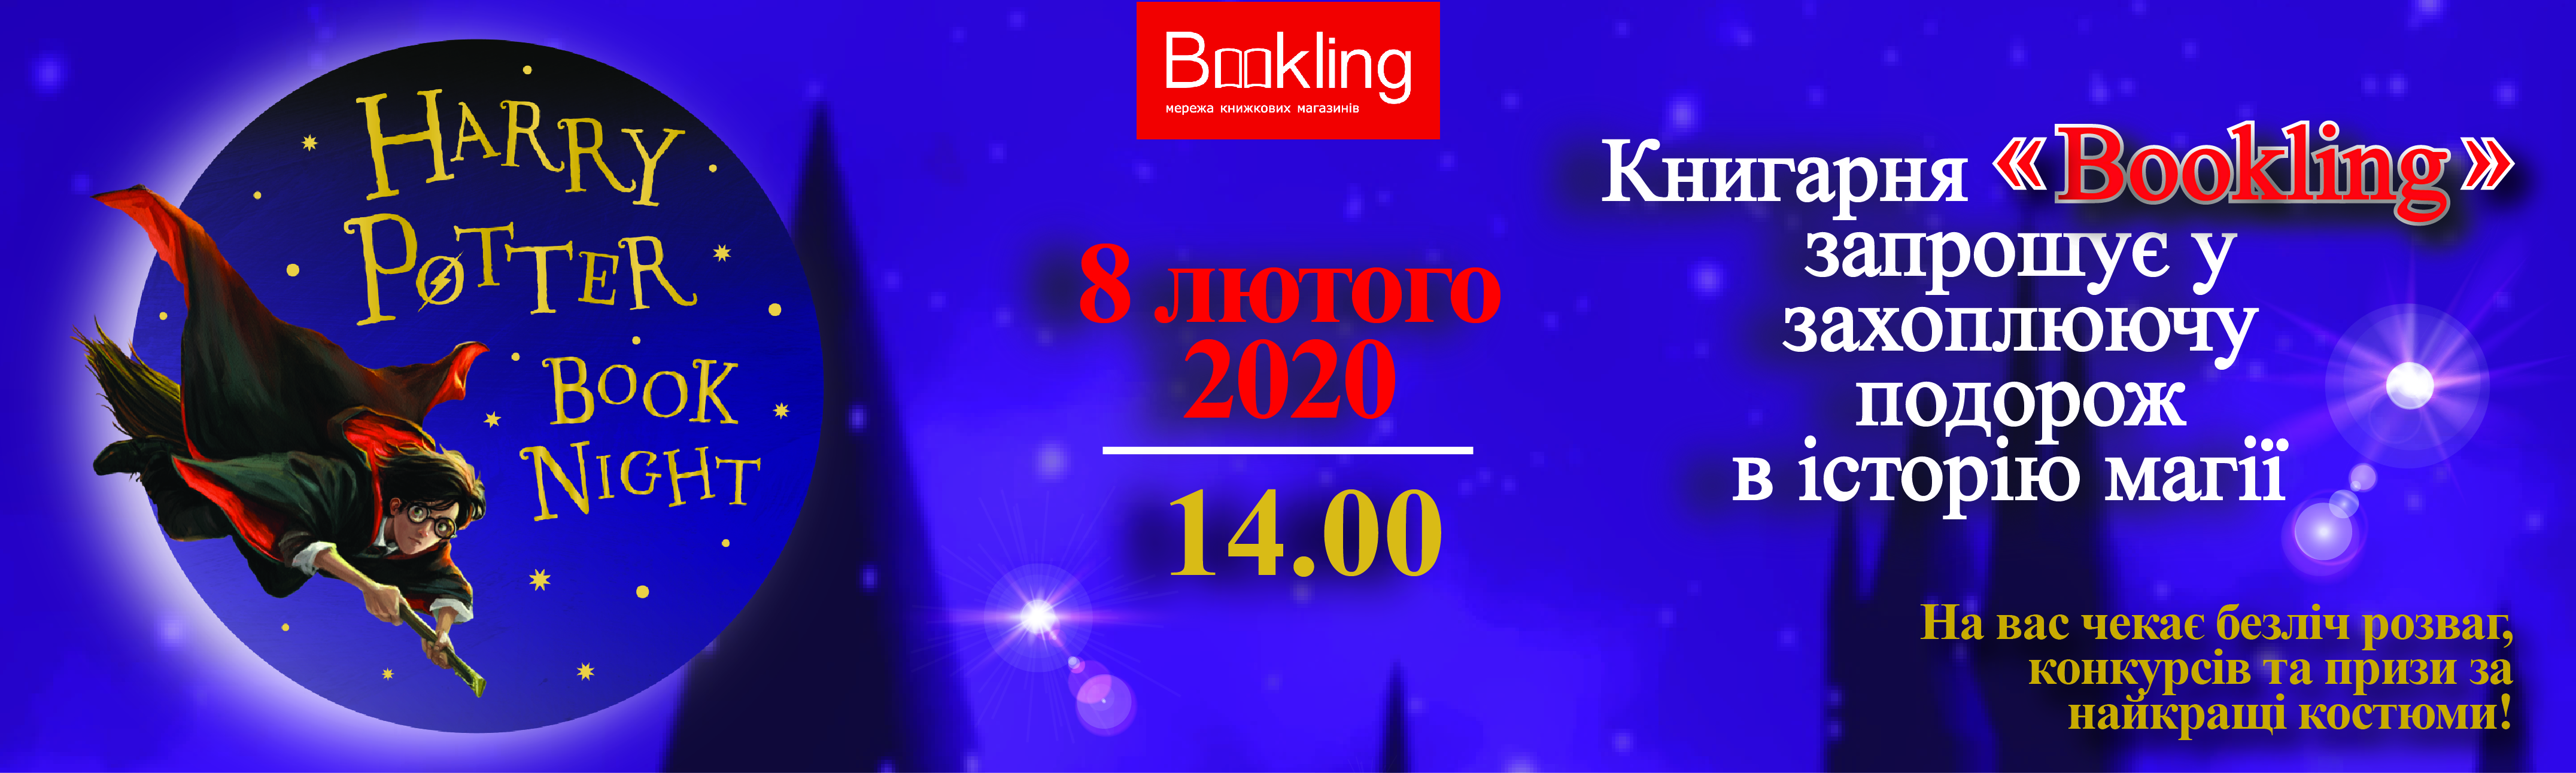 "Harry Potter Book Night 2020 у ""Bookling""!"